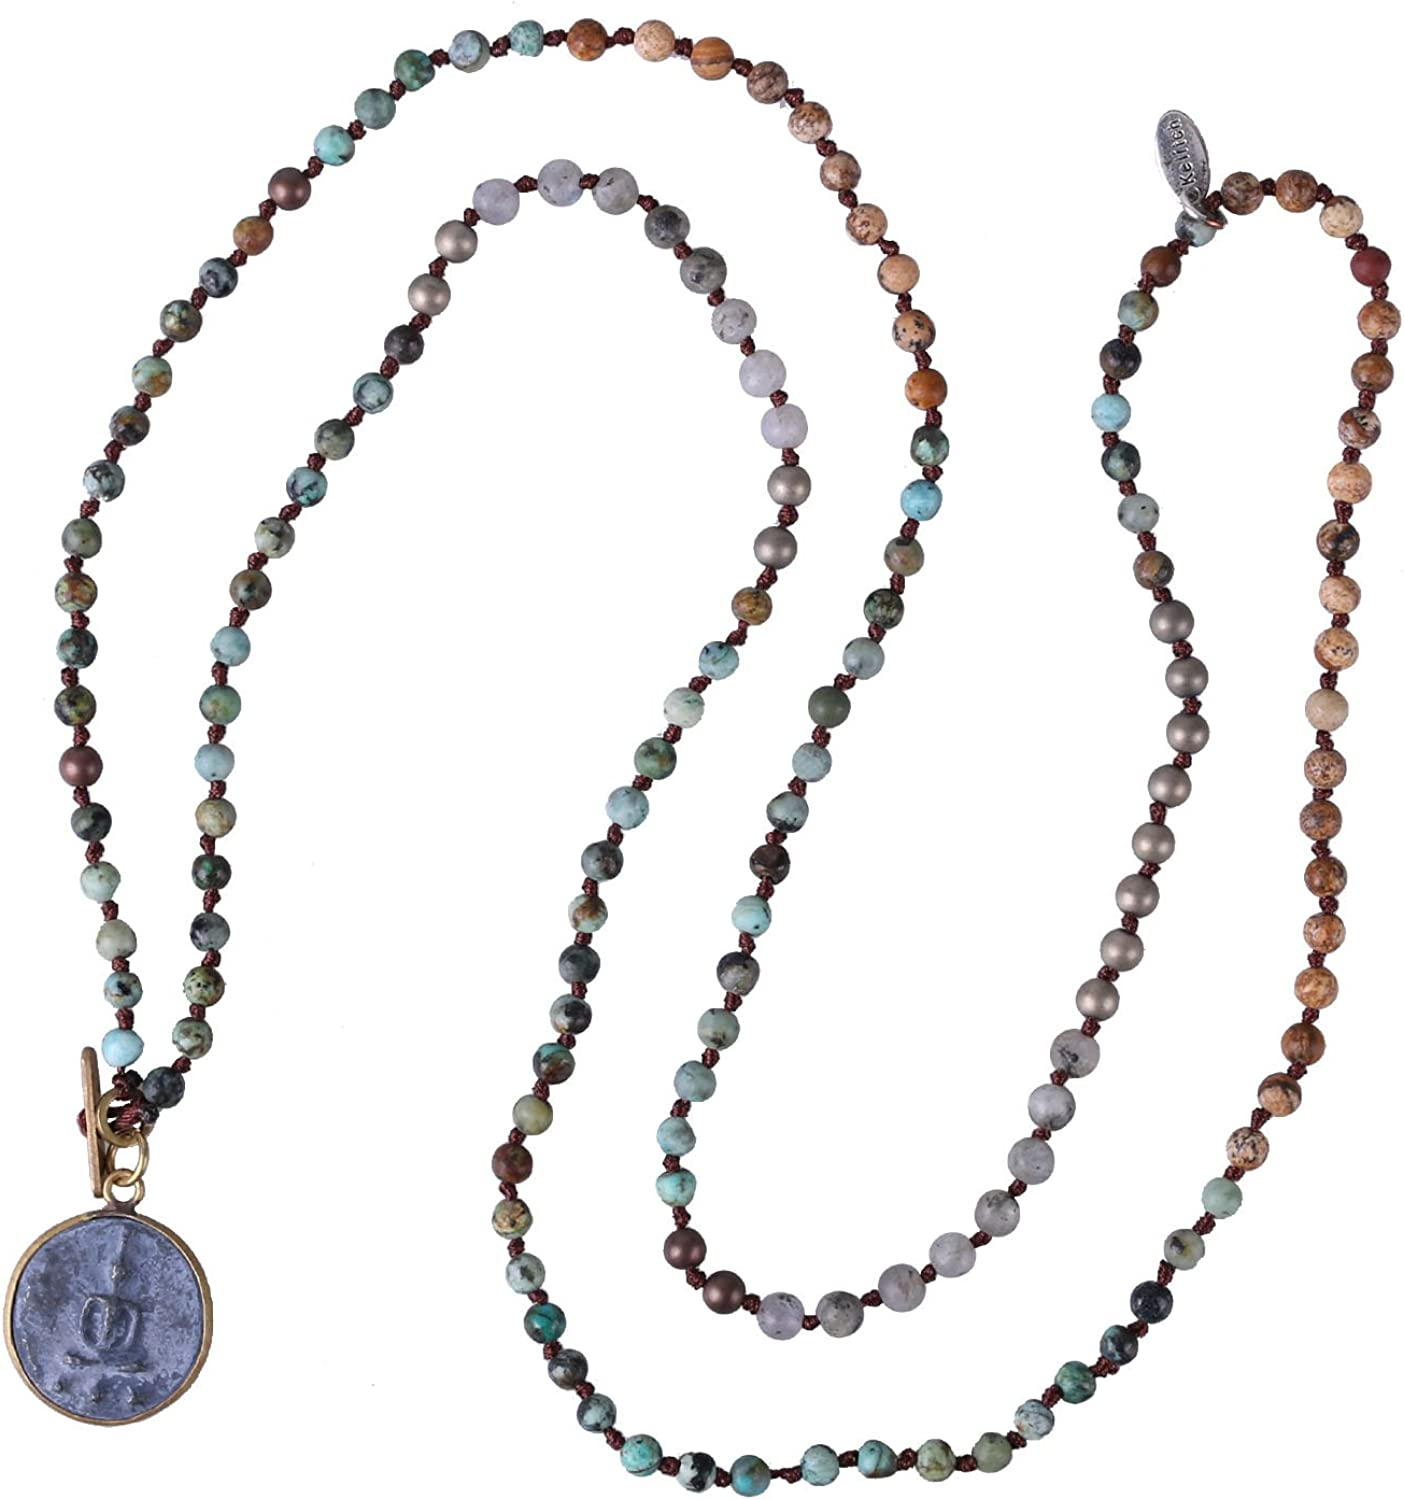 KELITCH Buddha Strand Necklace Long Beaded Sakyamuni Medal Pendant Necklace Lucky